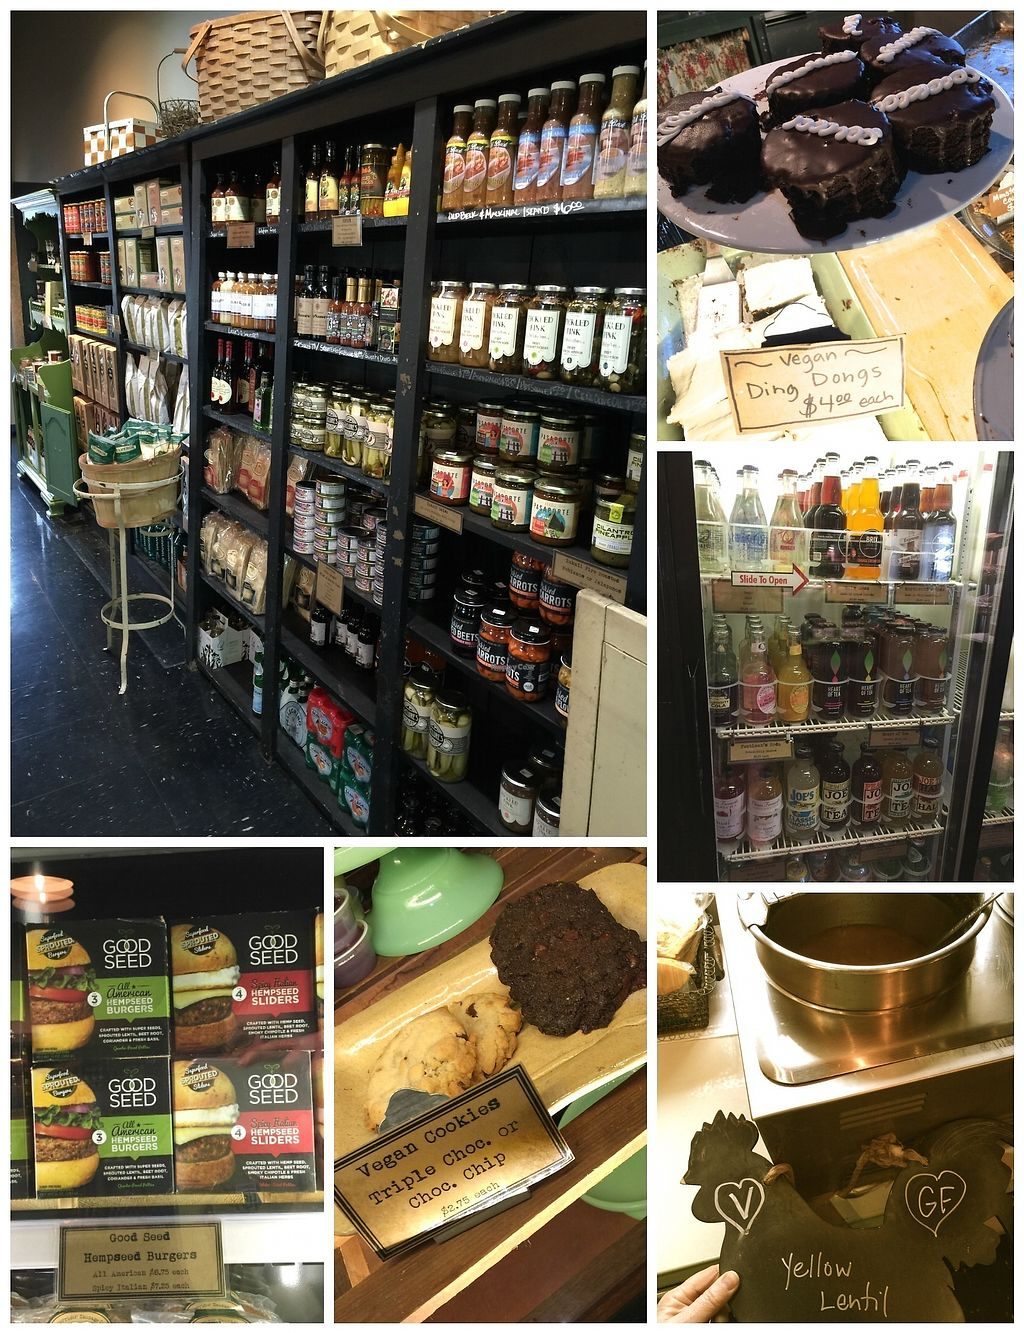 """Photo of The Farmhouse Deli and Pantry  by <a href=""""/members/profile/BeccaBochenek"""">BeccaBochenek</a> <br/>Great vegan salad choices, vegan Ding Dongs and a few cookie options, assorted soups and pantry items <br/> February 25, 2018  - <a href='/contact/abuse/image/48360/363671'>Report</a>"""